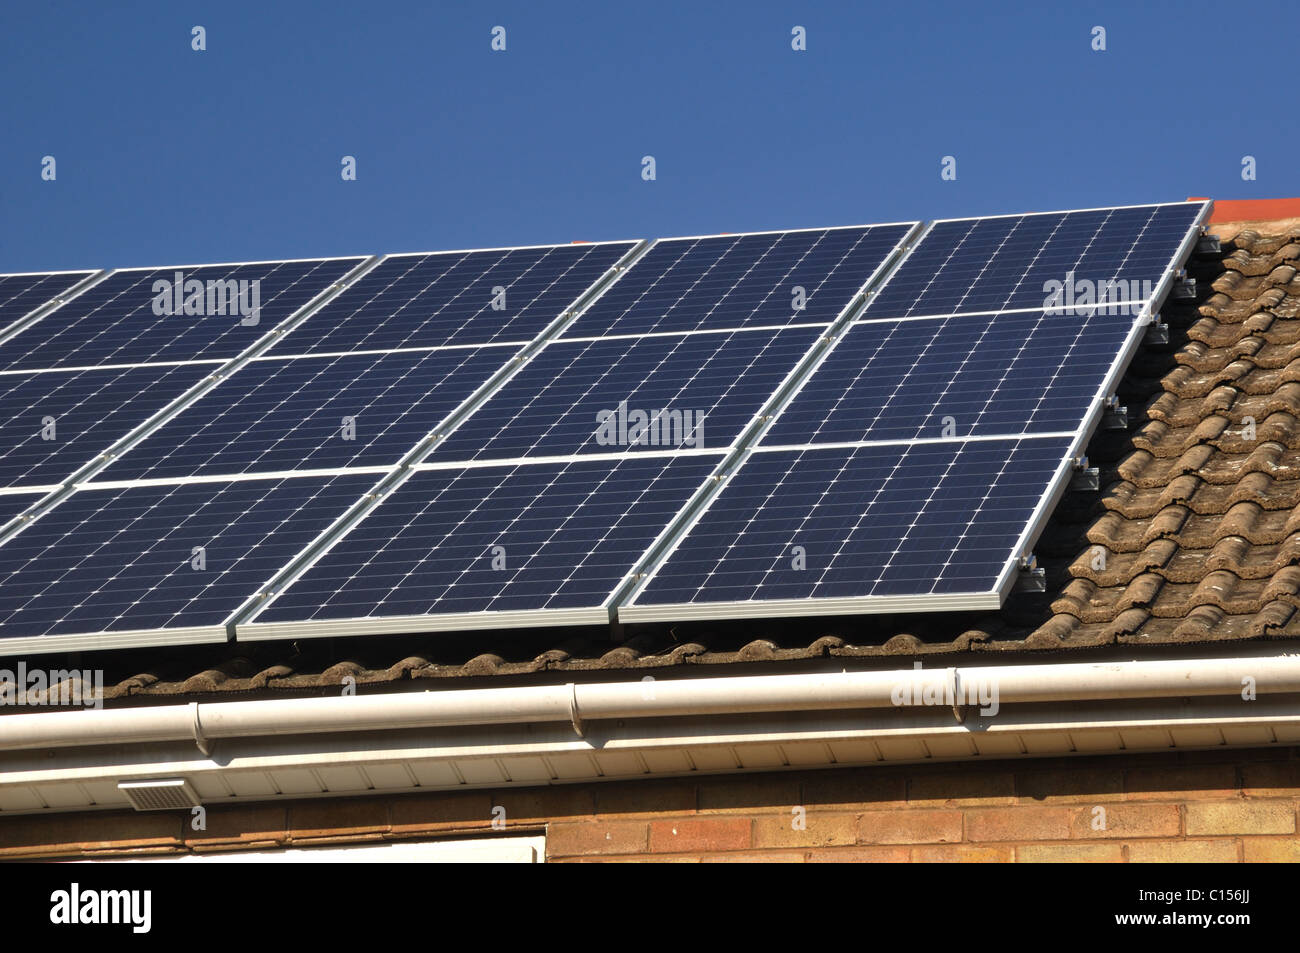 Solar Panels on a tiled, pitched roof Stock Photo: 35150378 - Alamy